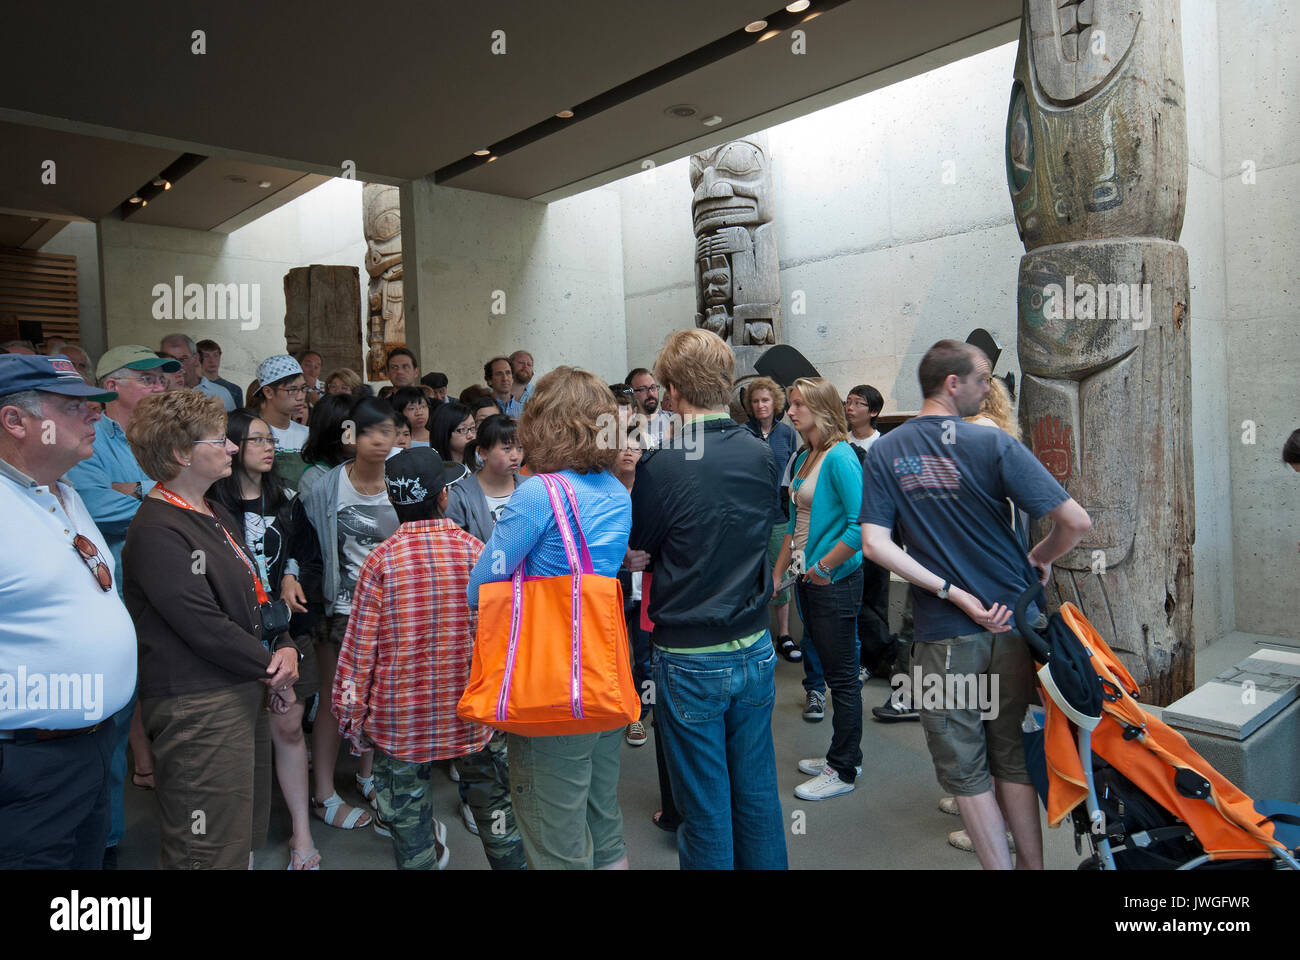 Haida totem poles and visitors at Museum of Anthropology, Vancouver, British Columbia, Canada - Stock Image